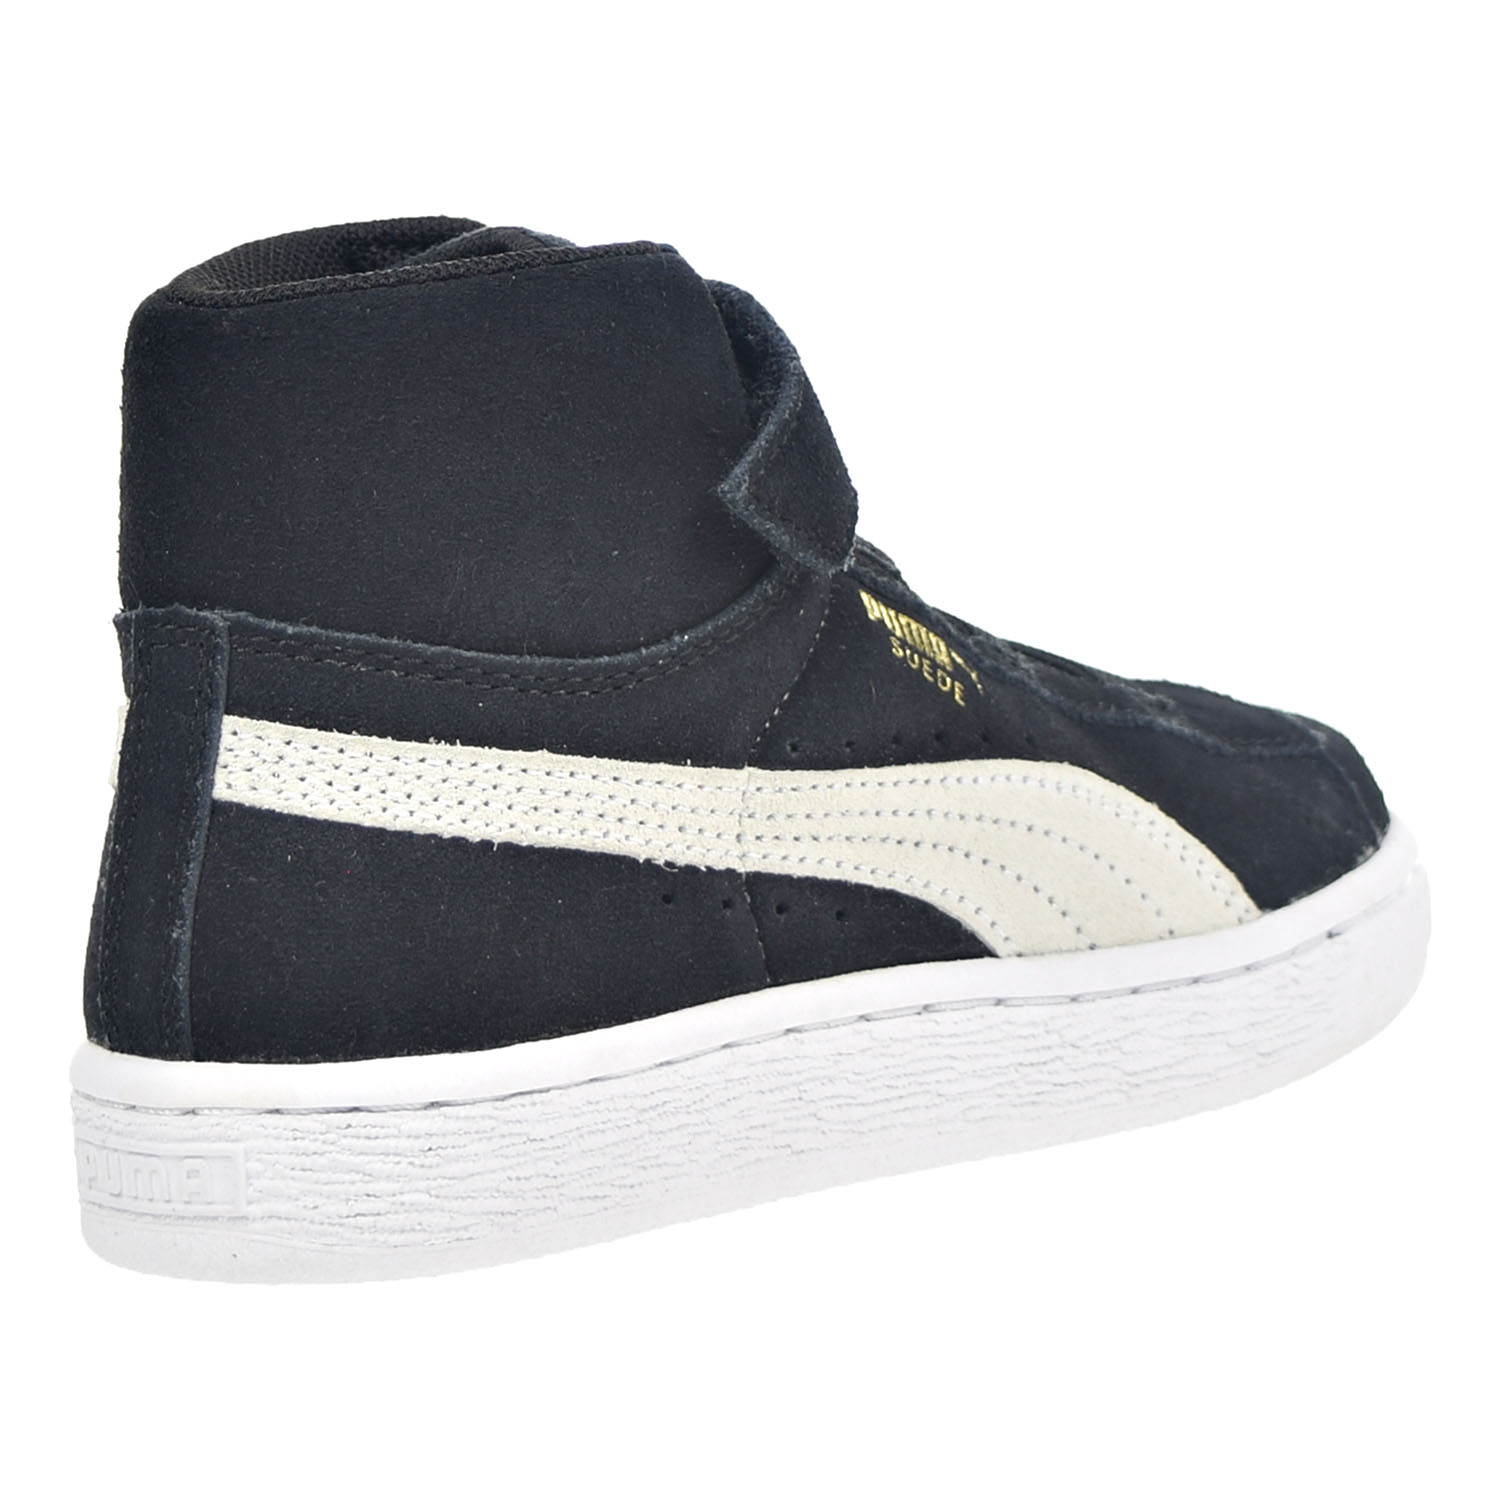 PUMA - Puma Suede Classic Mid V Toddlers Little Kids Shoes Black White Team Gold  356627-01 - Walmart.com 7637782ec